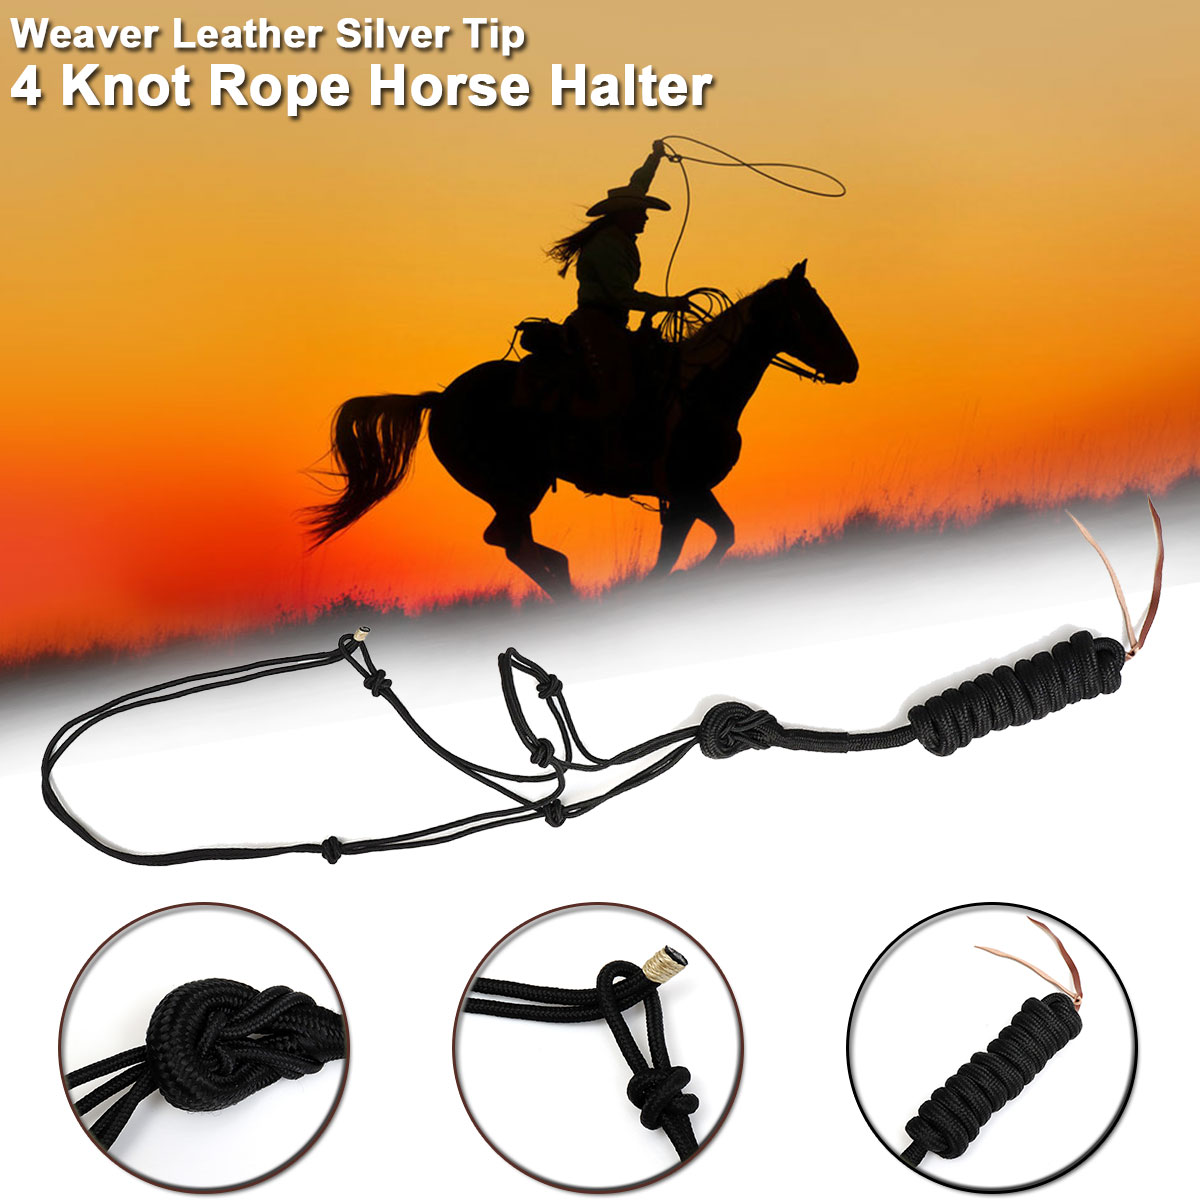 Weaver Leather Silver Tip 4 Knot Rope Horse Halter Riding Horse Racing Equestrian Sport Rope Accessories